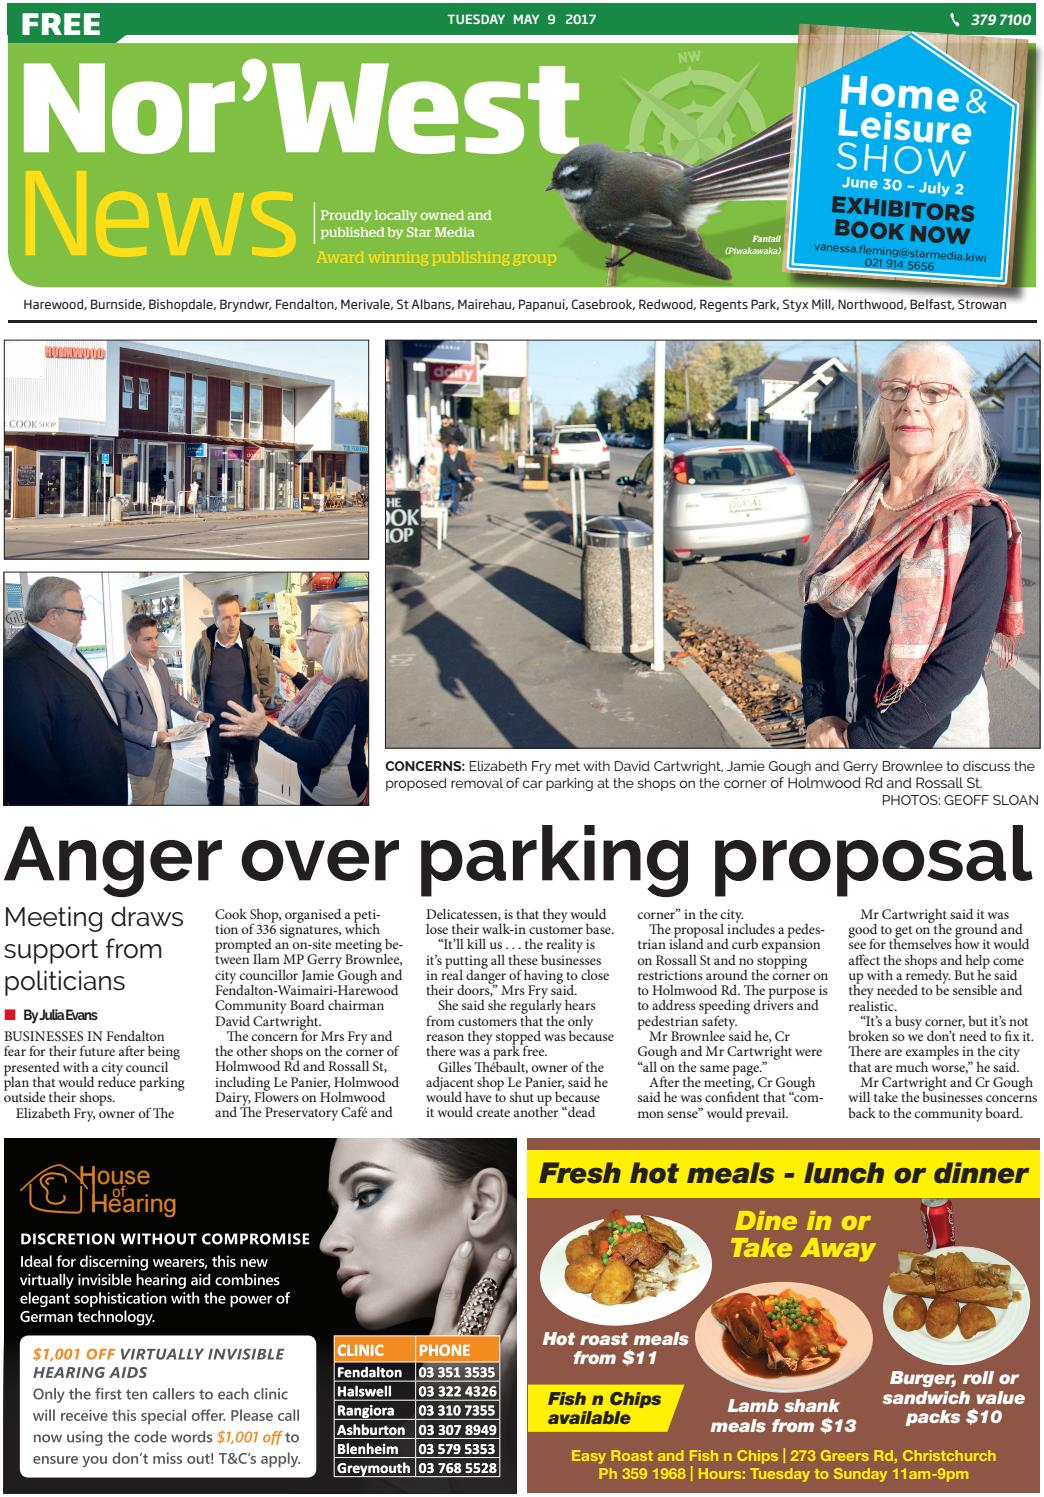 NorWest News 09-05-17 by Local Newspapers - issuu 1f9385b05318